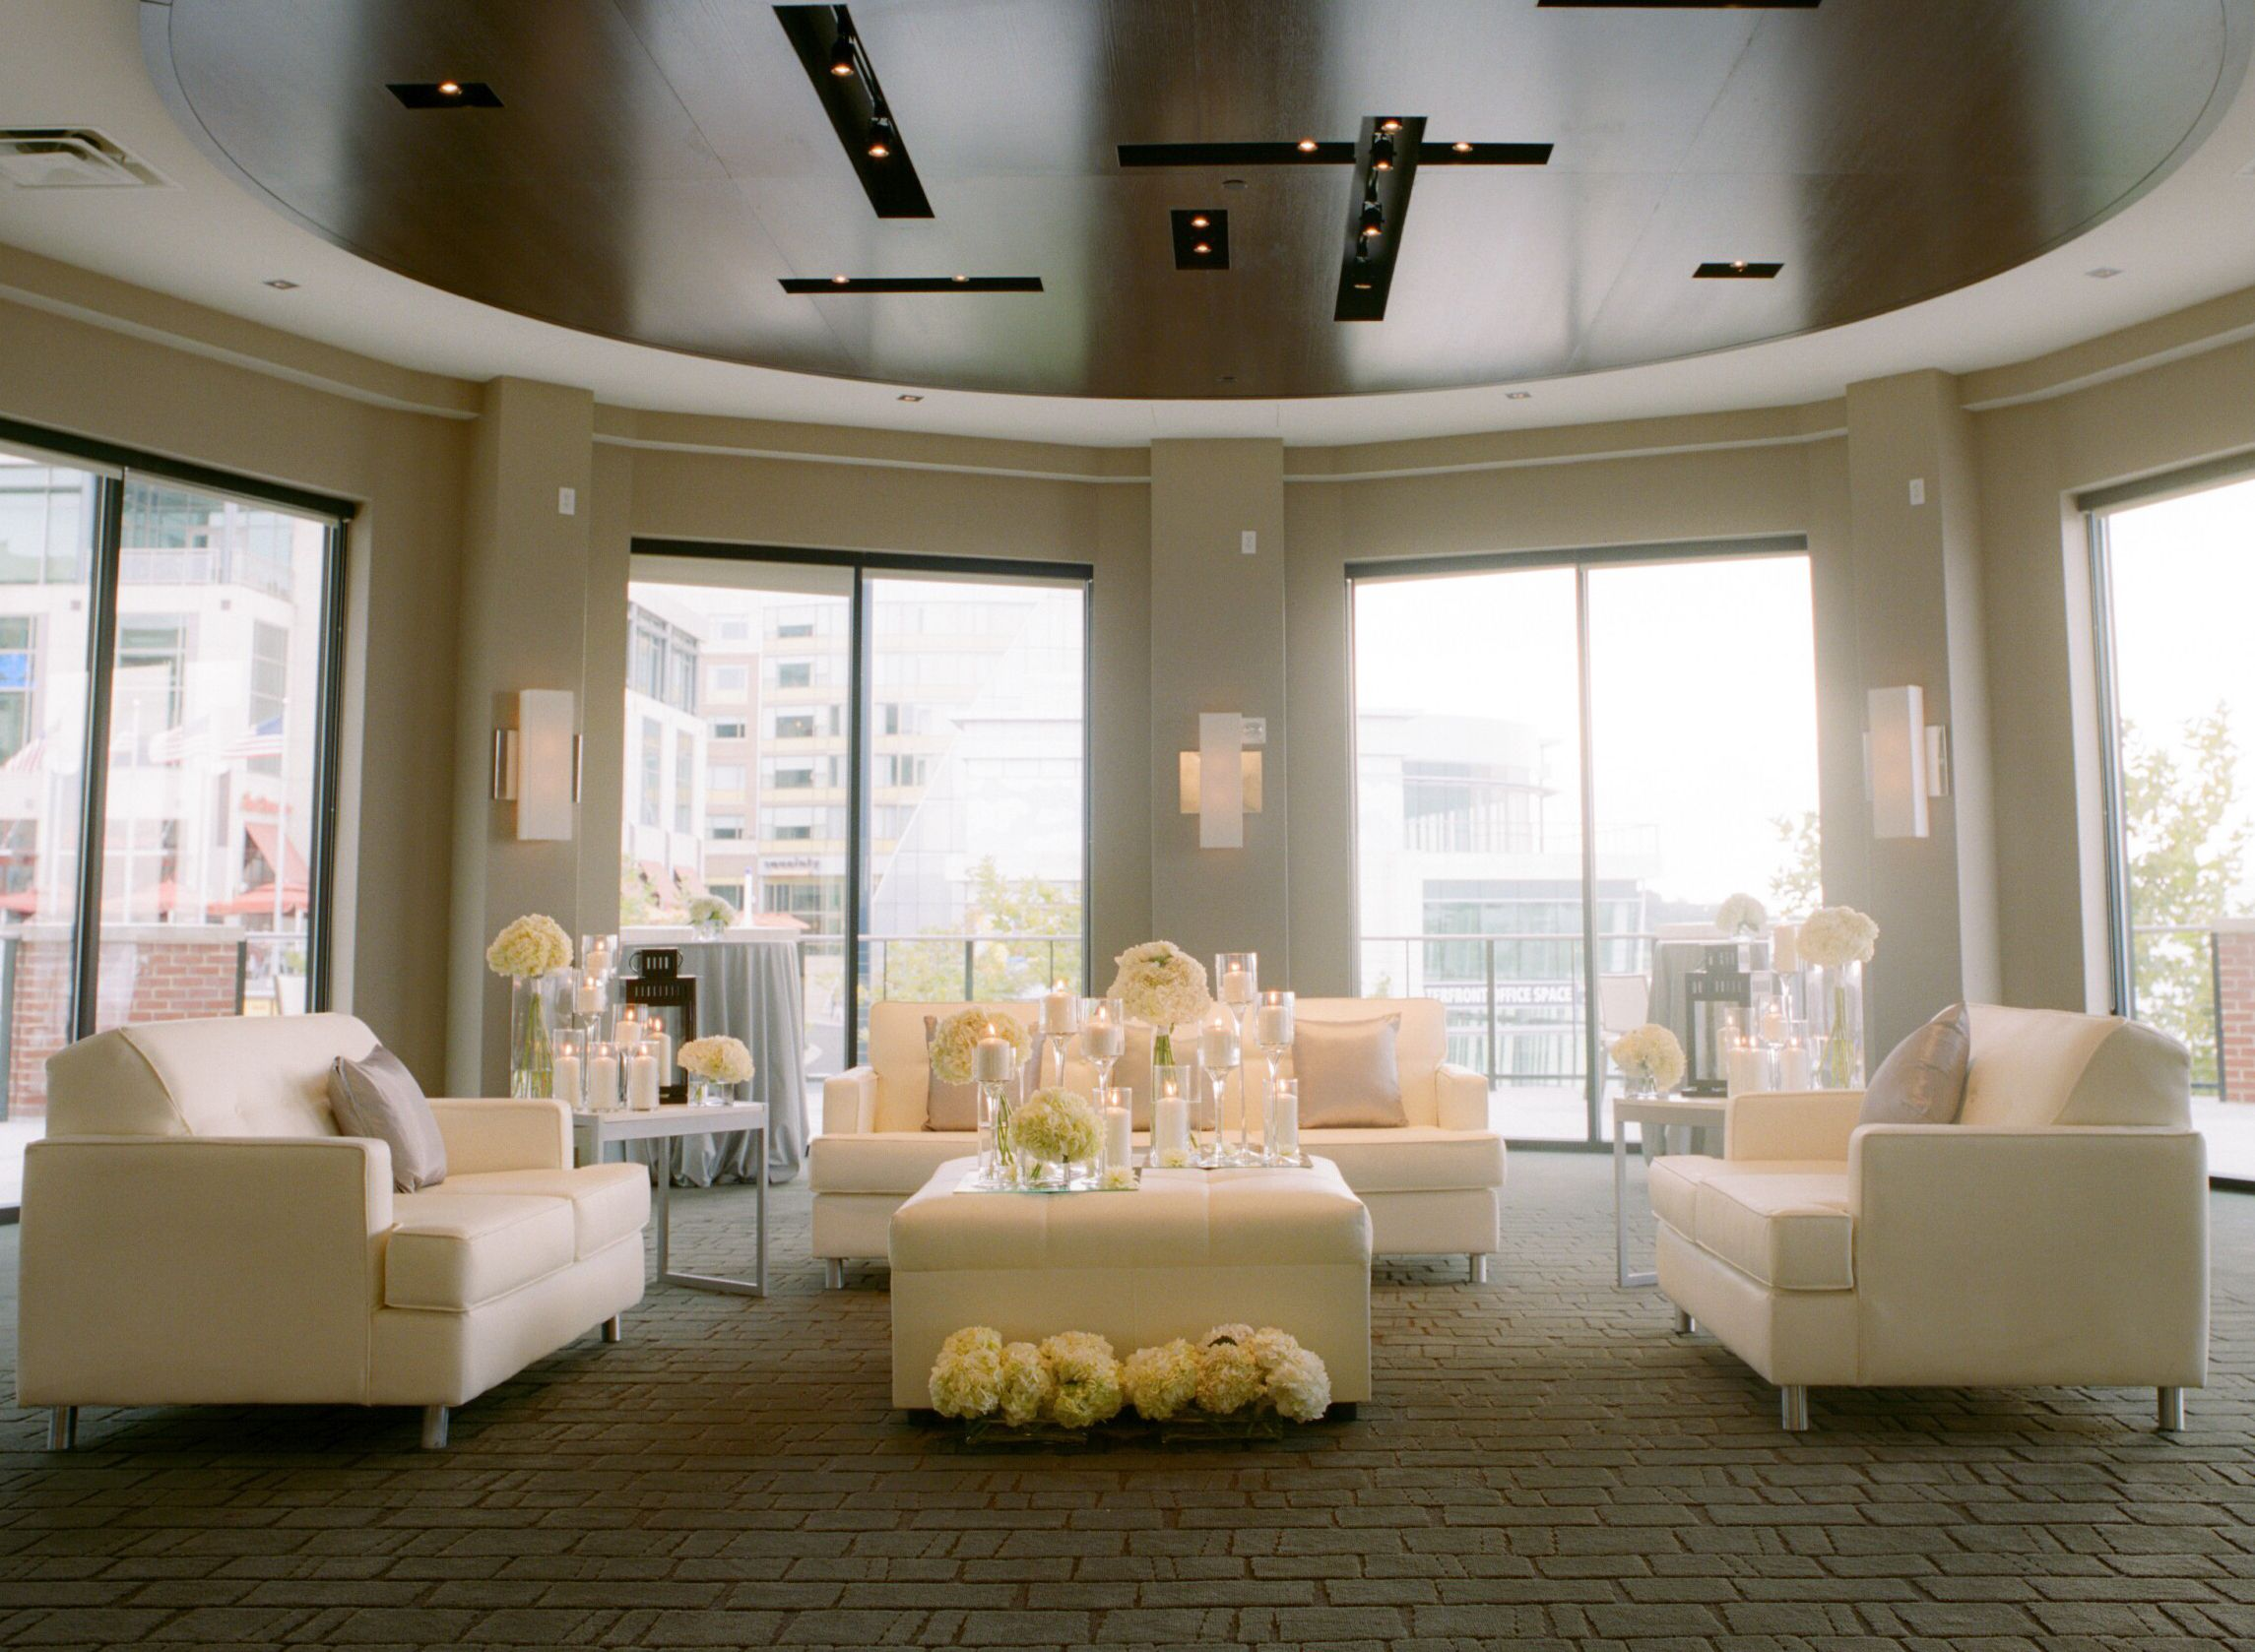 1000 Images About Washington Dc Area Weddings On Pinterest: The Sunset Room At The National Harbor